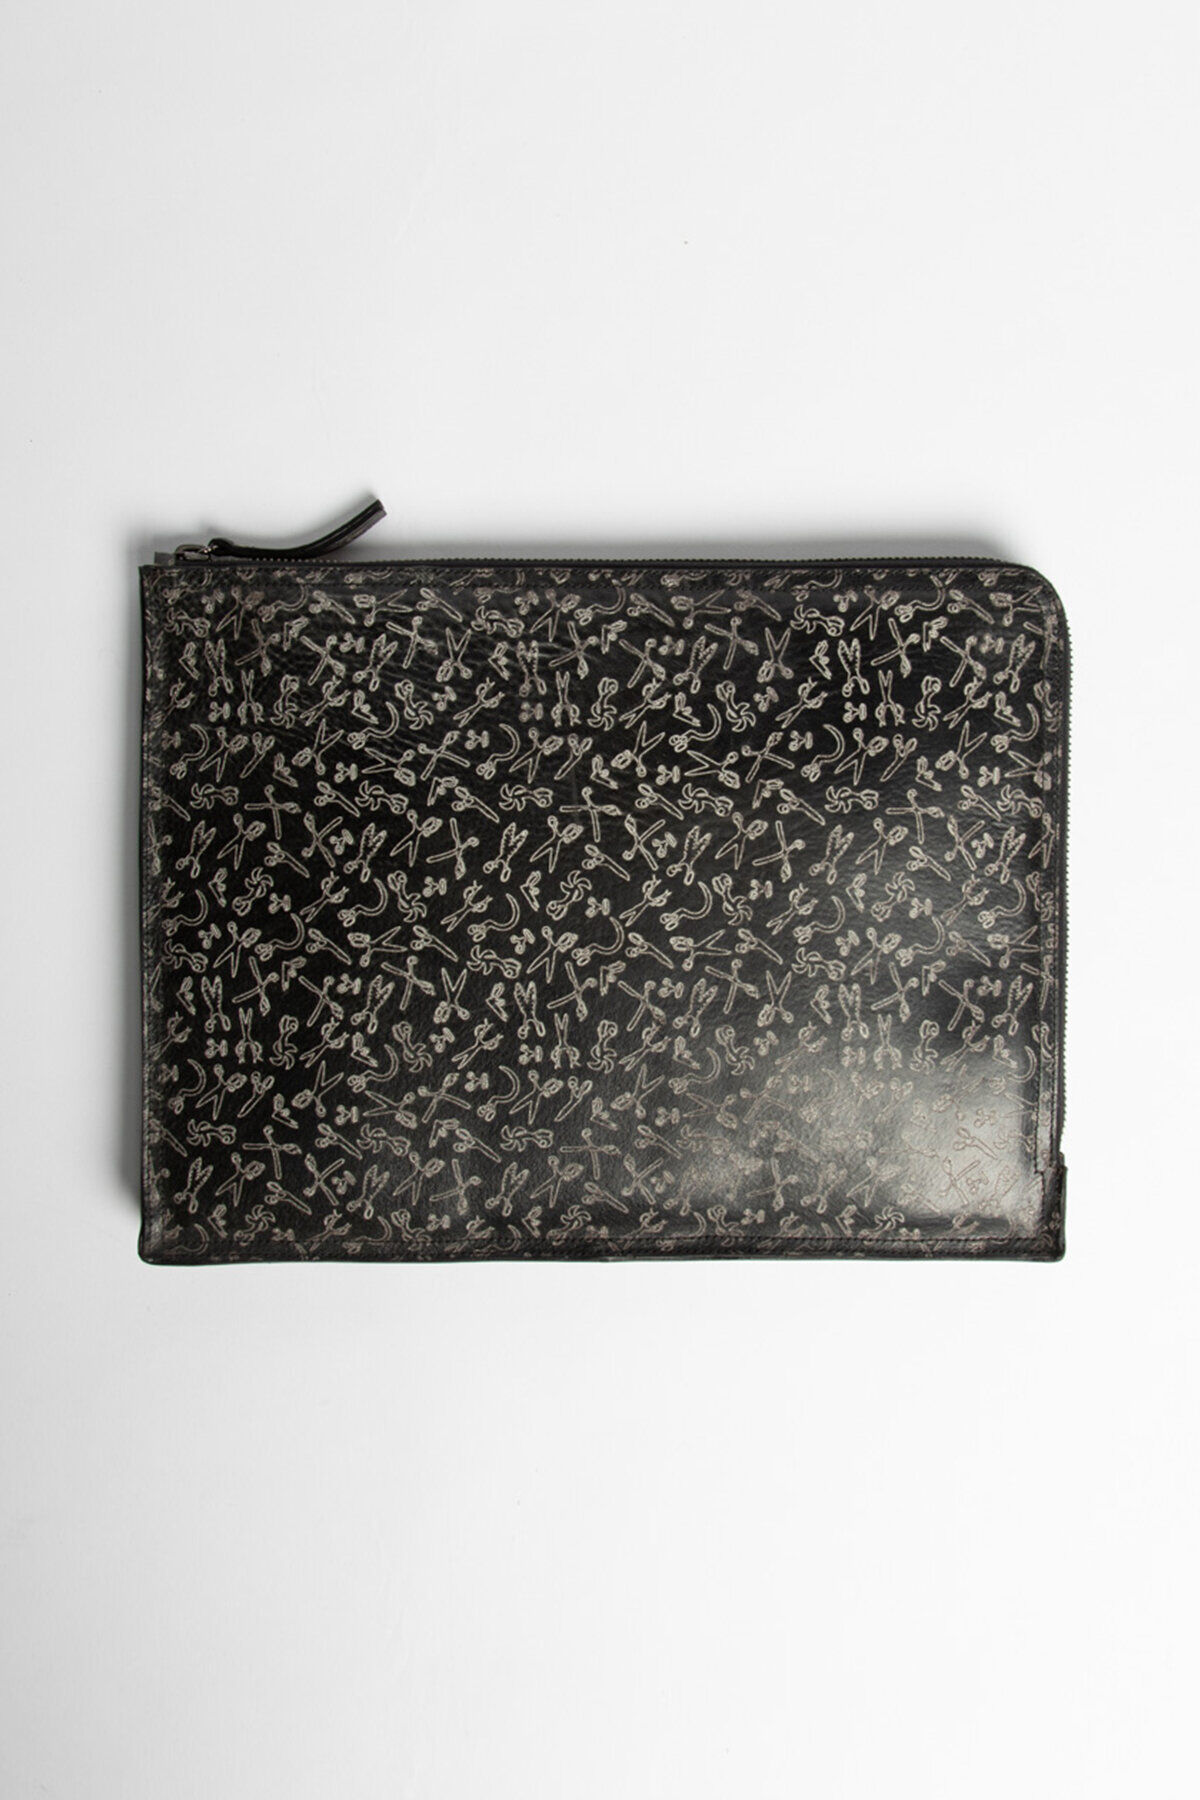 MACBOOK COVER Scissor All-Over Print Leather